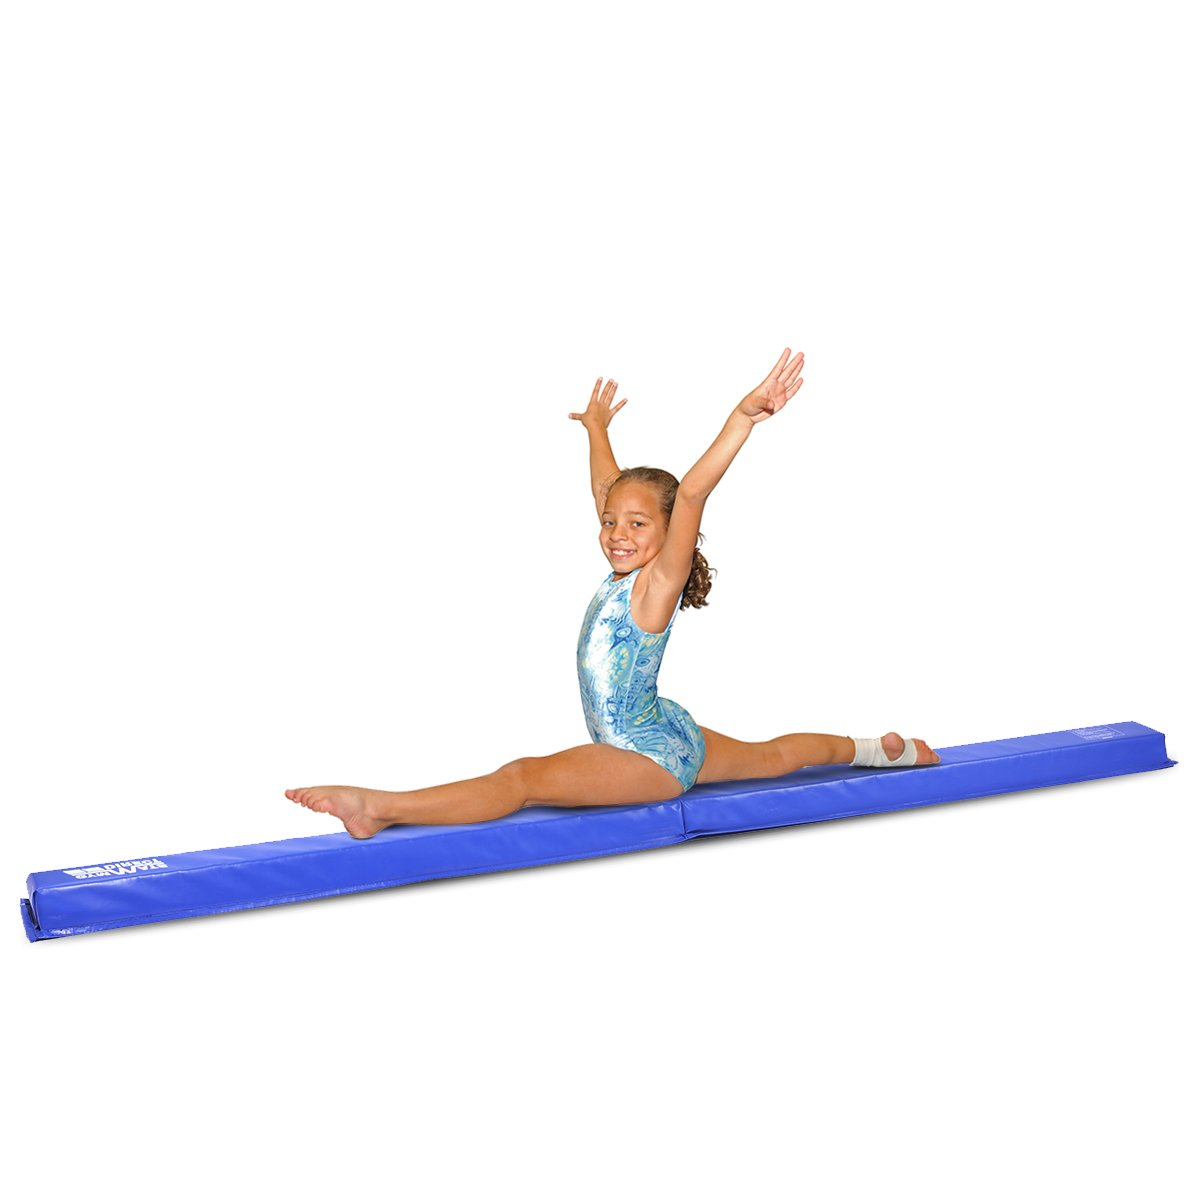 gymmatsdirect Gymnastics Beams for Home, 9' Folding Floor Balance Beam for Kids at-Home Practice, Blue